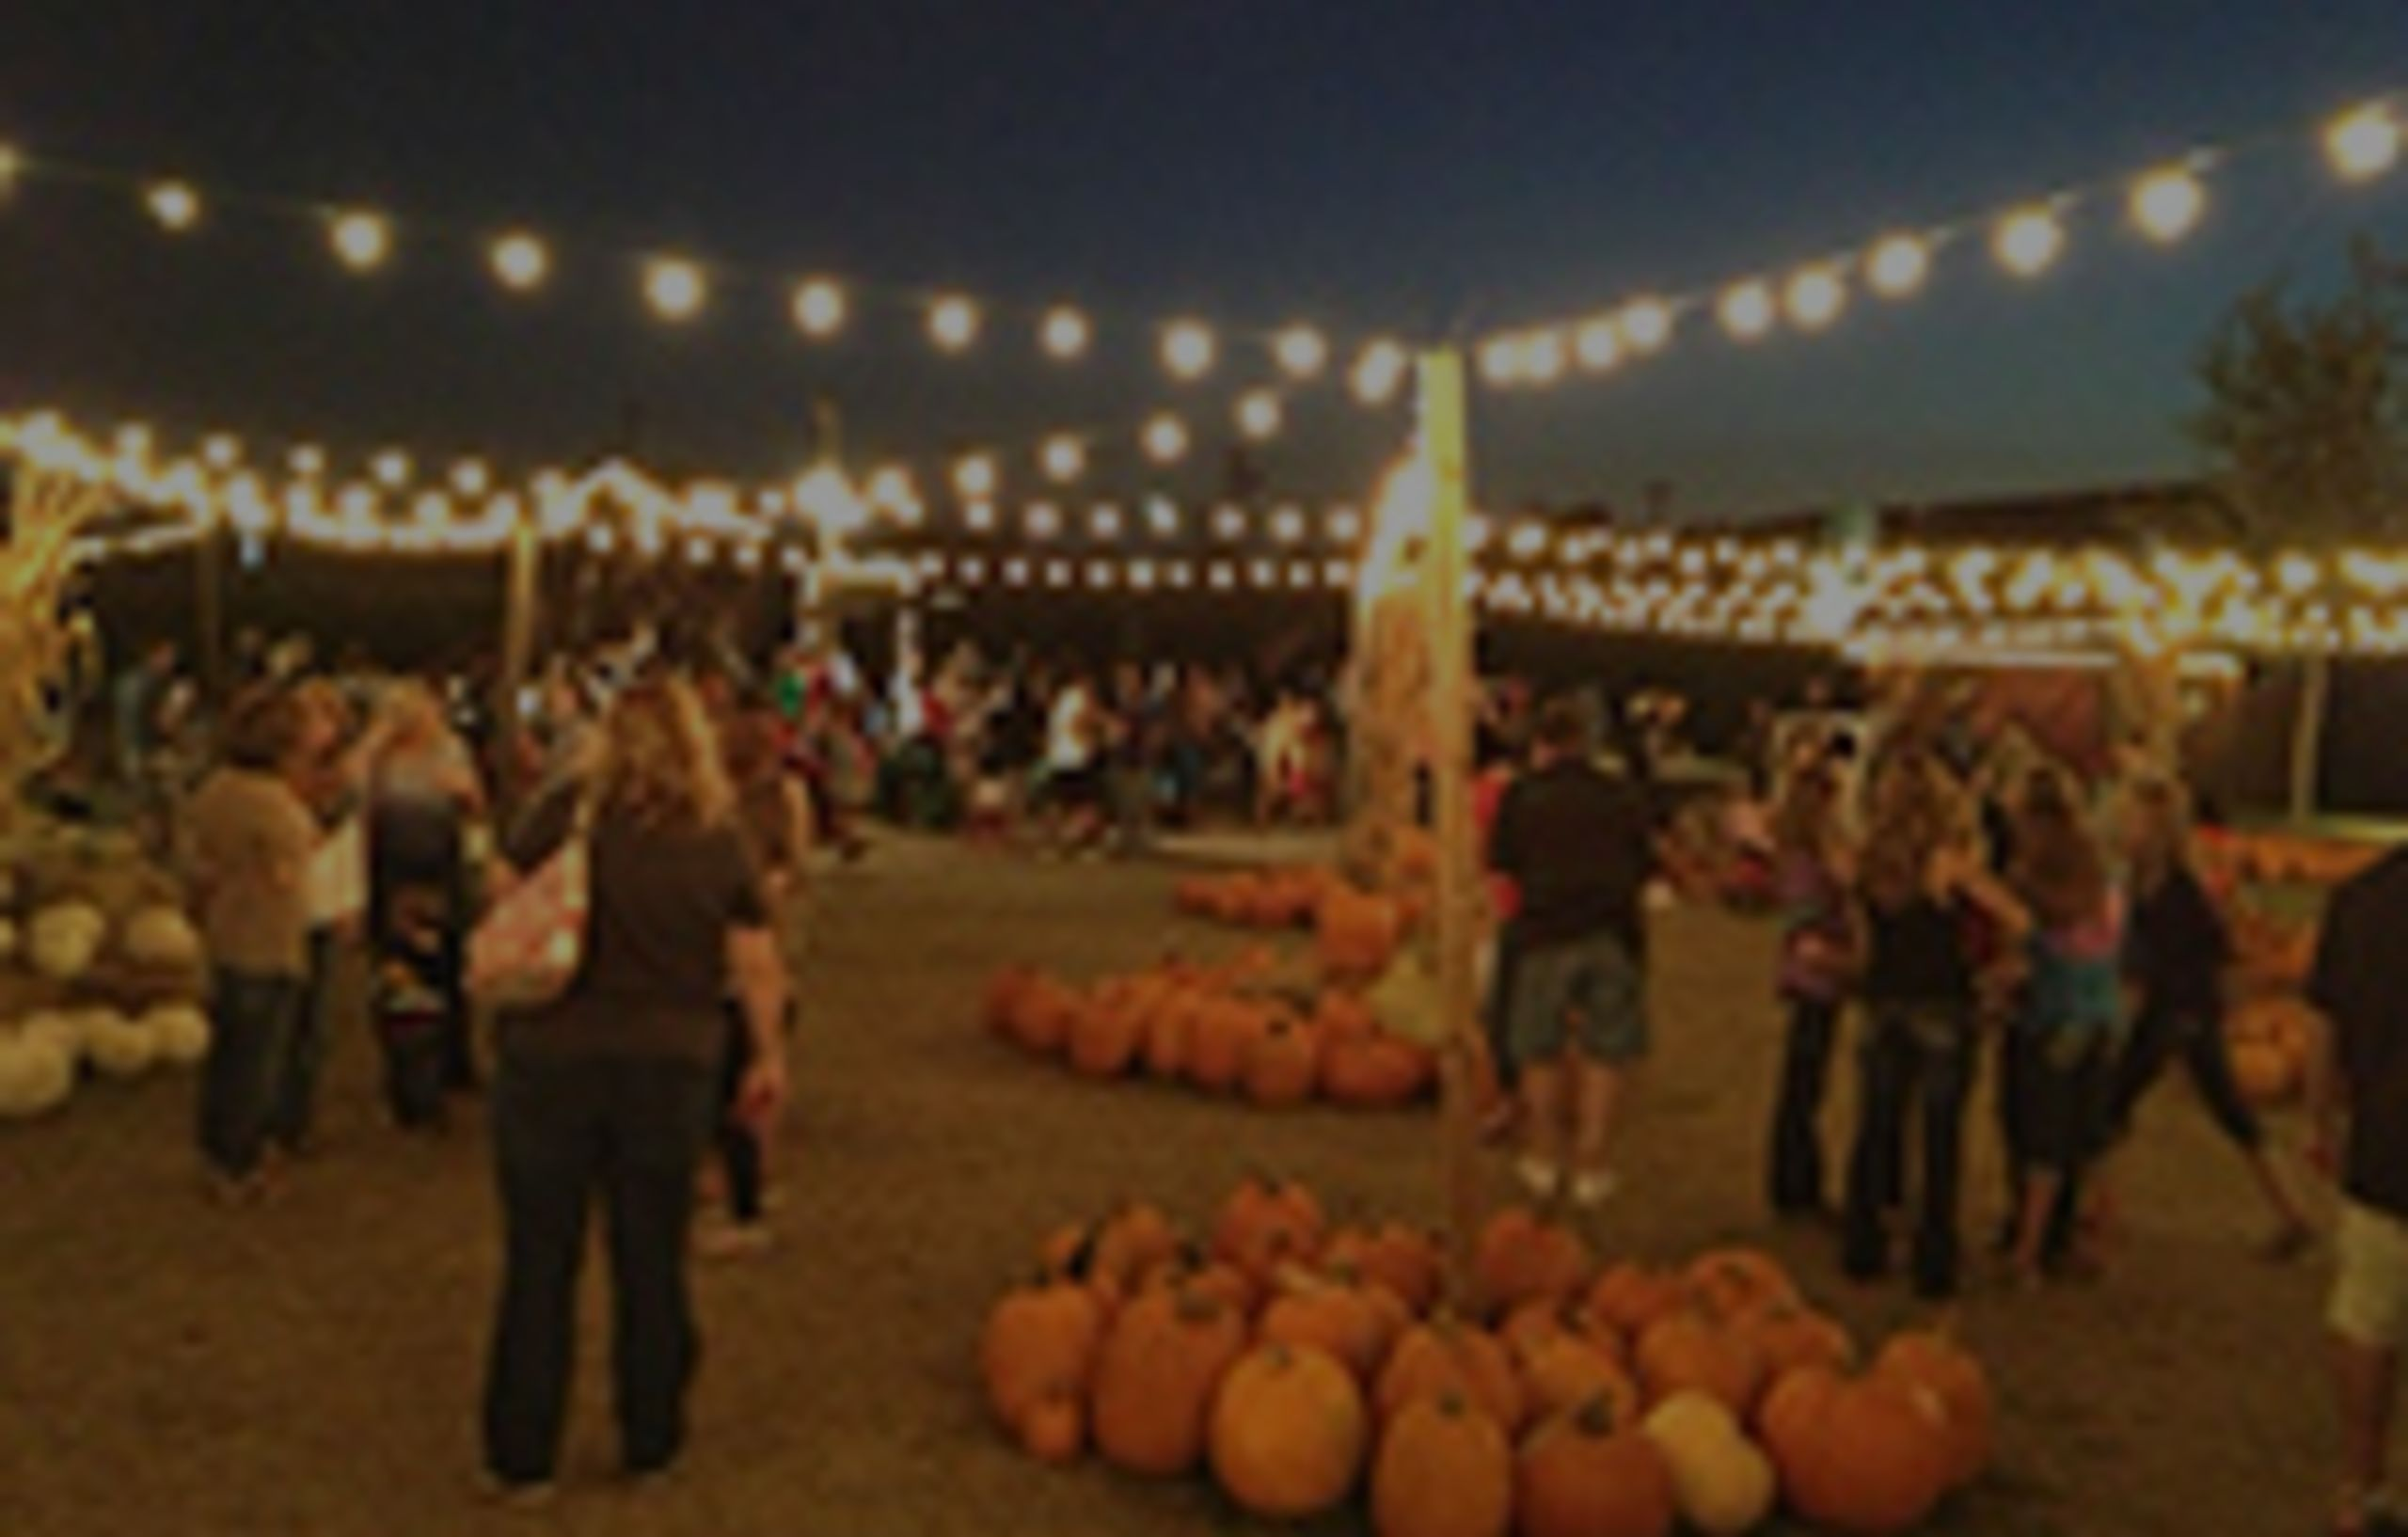 Hall's Pumpkin Patch